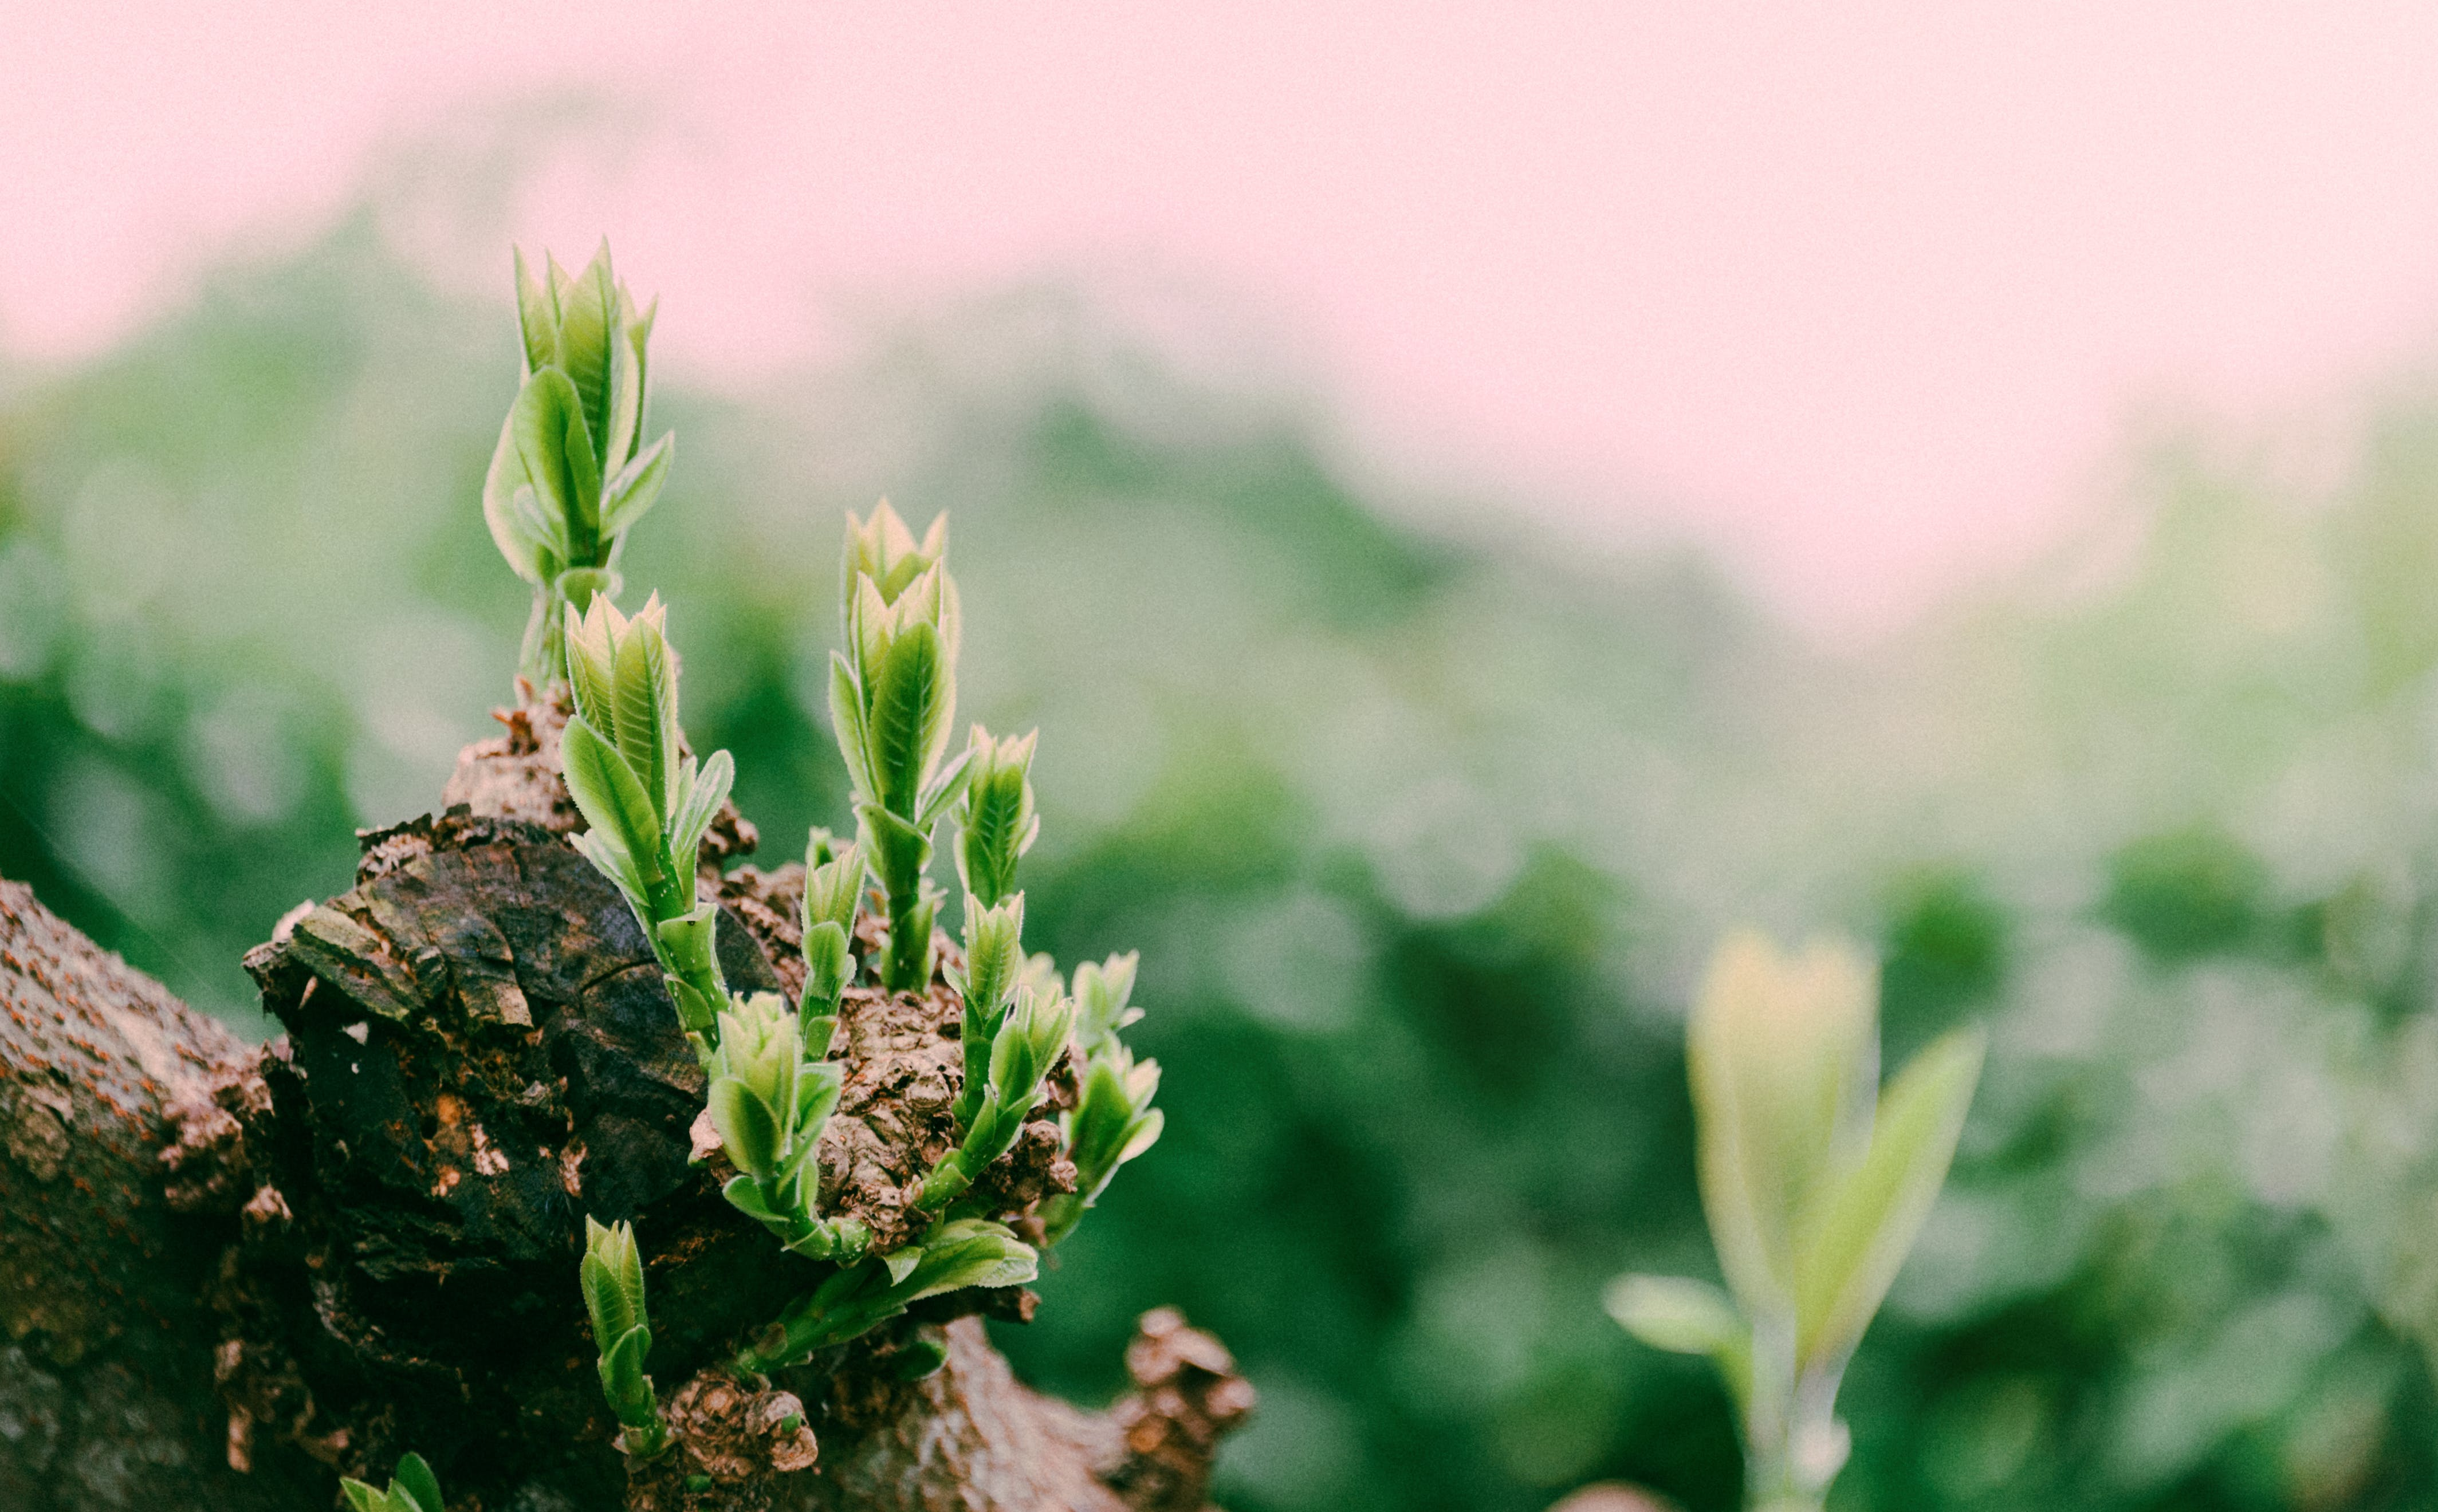 Close-Up Photo of Green Plant